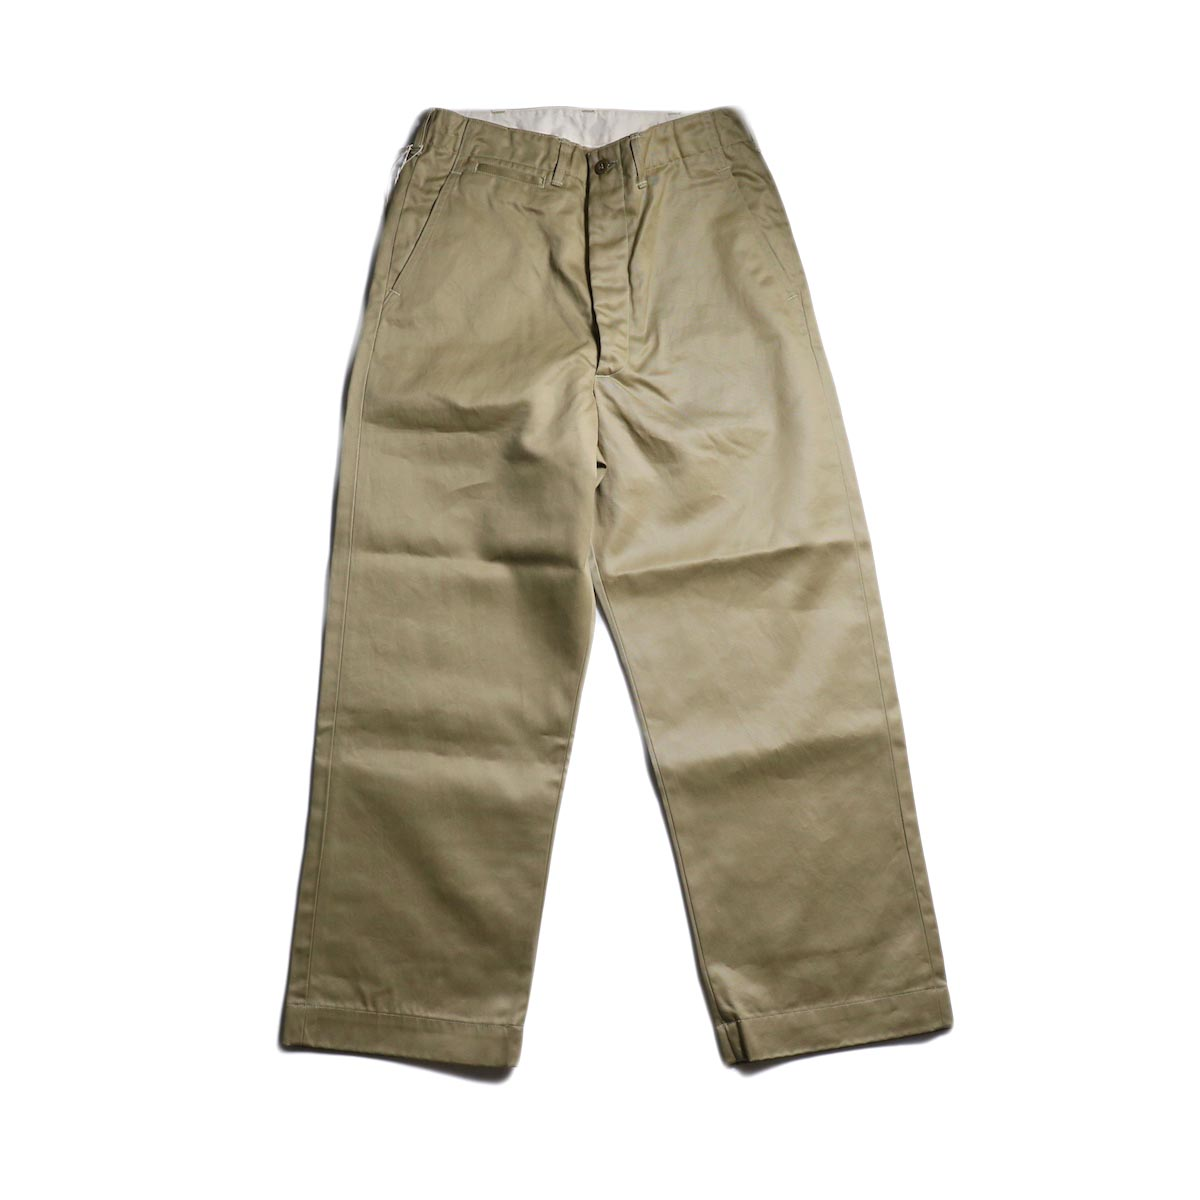 orSlow / VINTAGE FIT ARMY TROUSERS (Khaki)正面